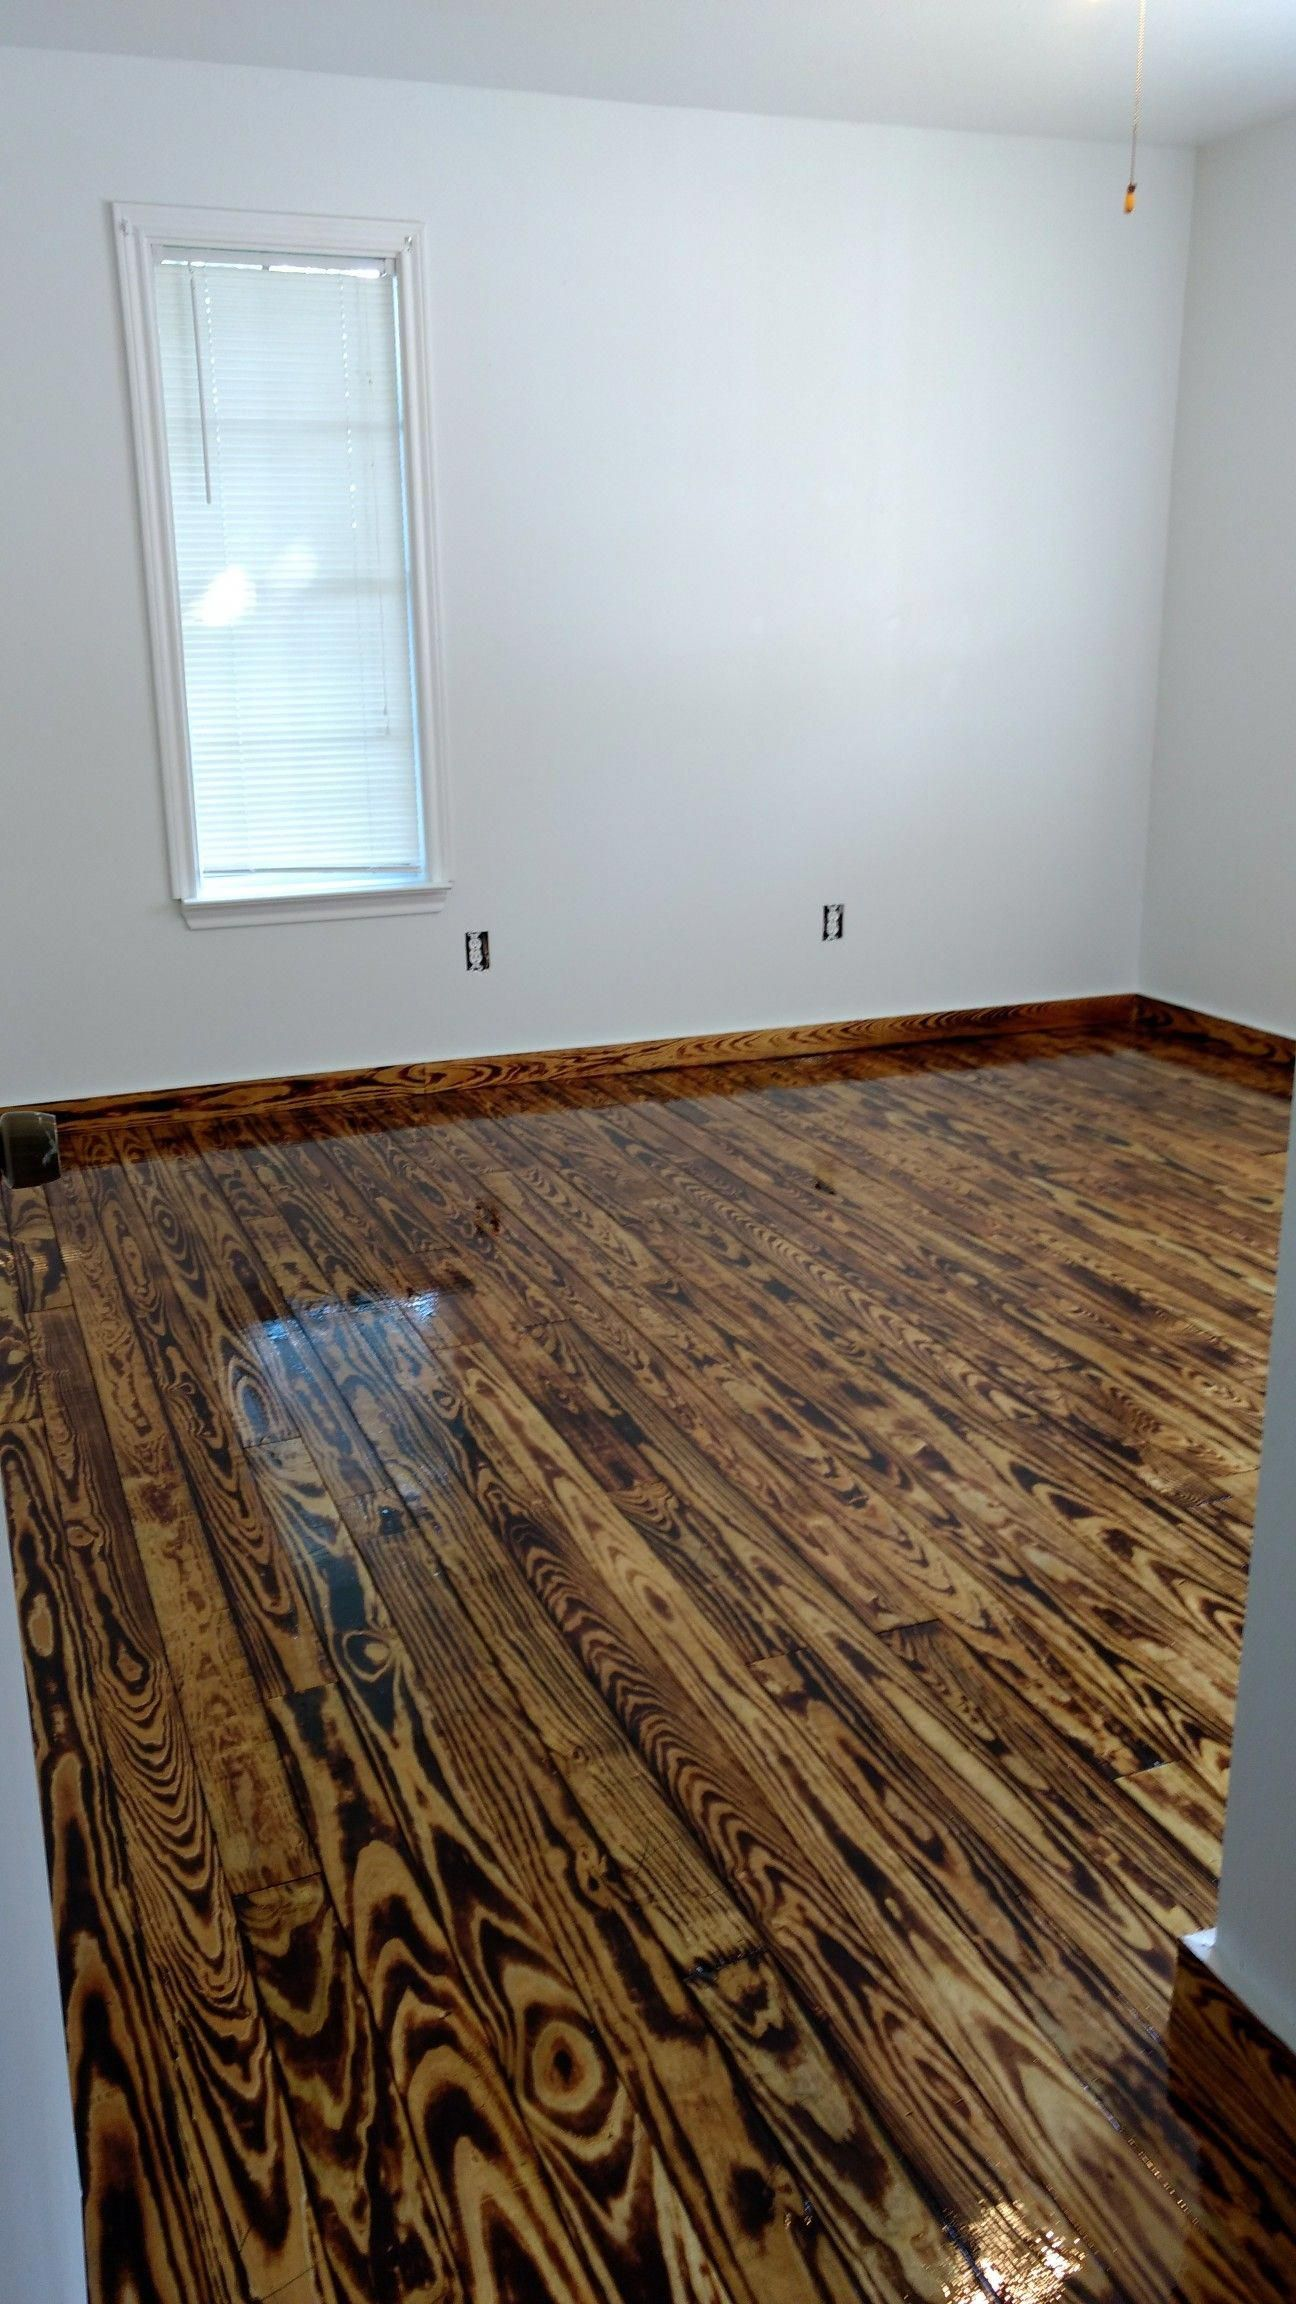 Dyi 1x4 Flooring Yellow Pine 1x4 Burnt With A Torch And Polyurethane Polyurethanewoodfloors Wood Floor Design Diy Wood Floors Pine Wood Flooring